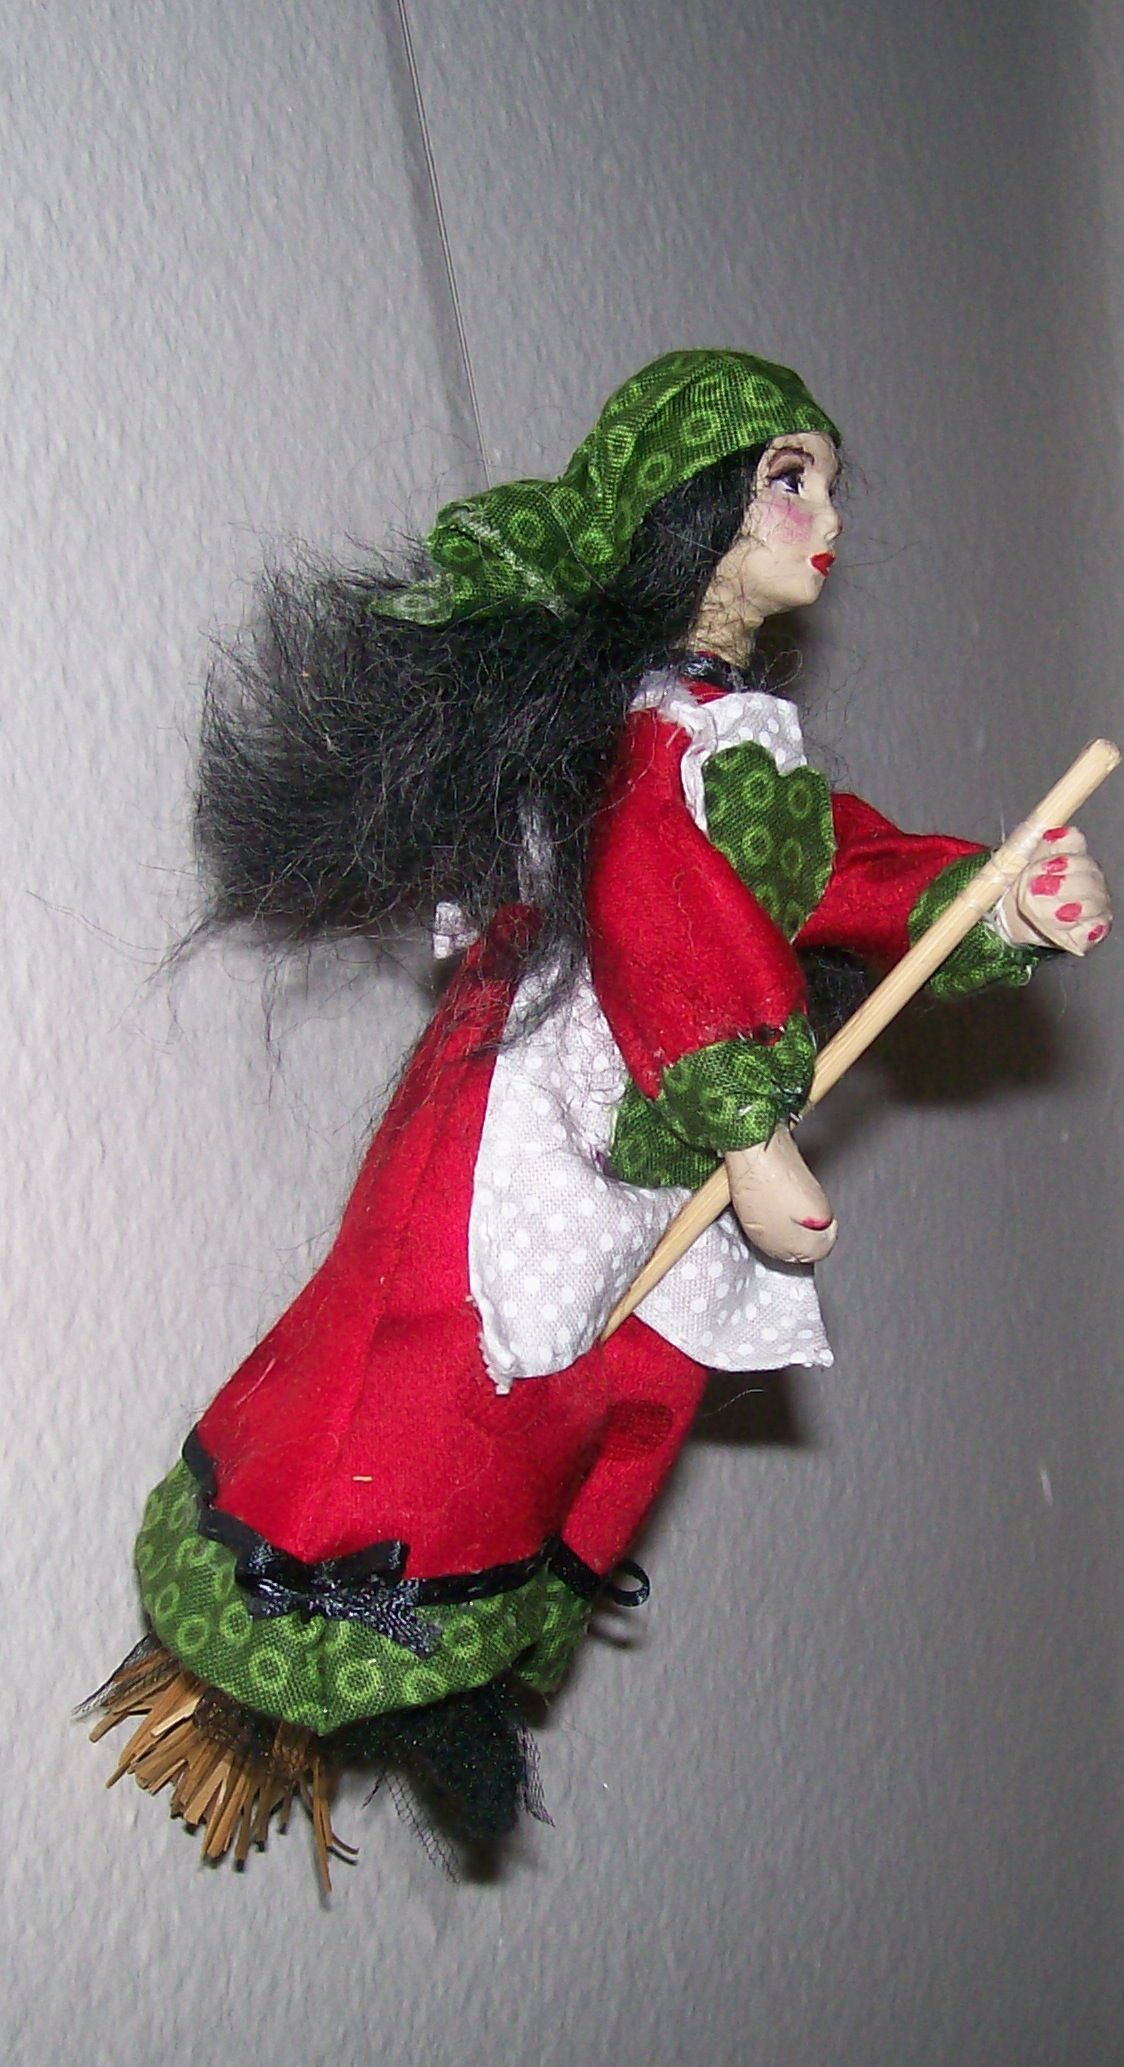 Kitchen Witch I Want To Buy This Please Help Kitchen Witch Fairy Dolls Witch Doll